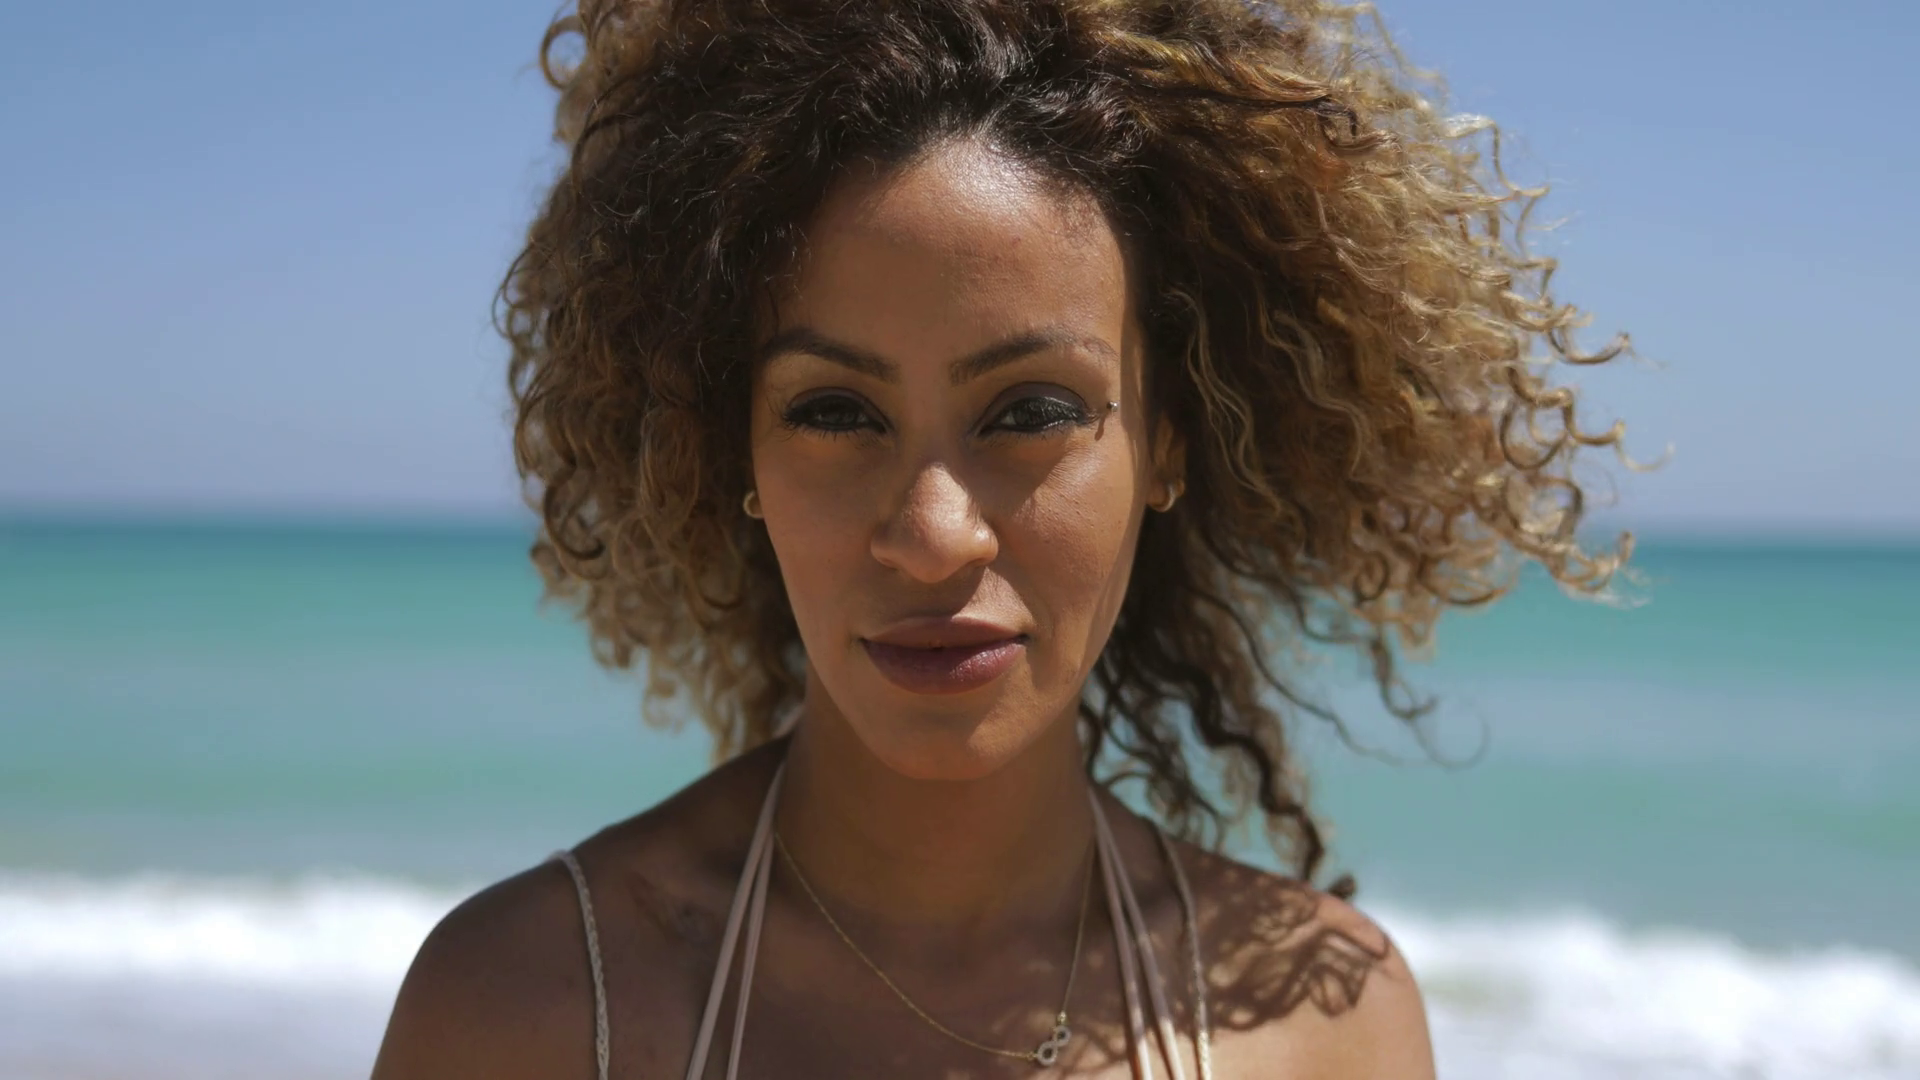 Portrait Of Wonderful Black Woman With Curly Hair Flying In Wind Enjoying Sunlight On Tropical Coastline And Smiling At Camera Stoc Regrow Hair Fall Hair Hair